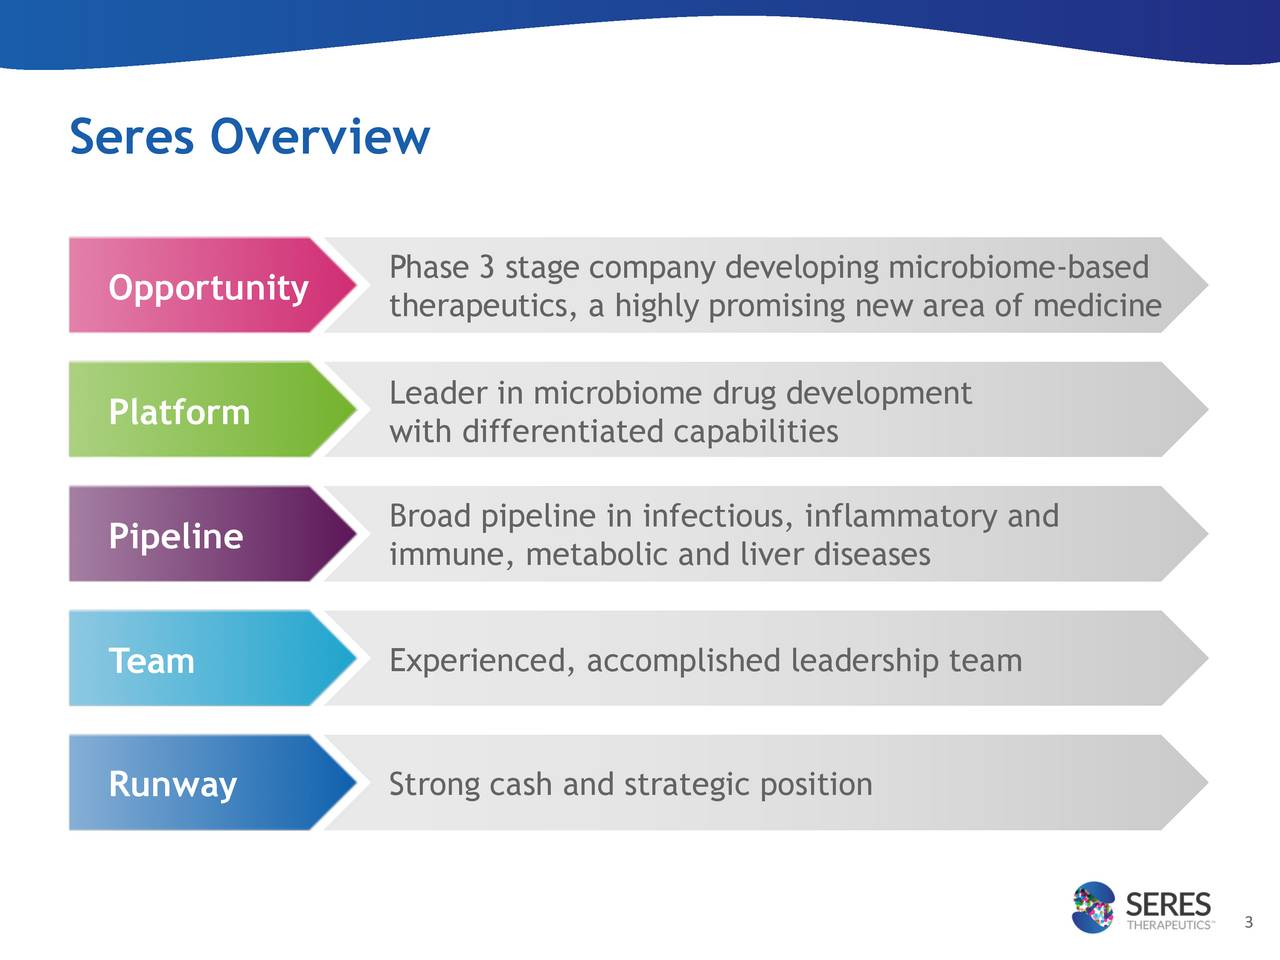 Opportunity Phase 3 stage company developing microbiobaeed therapeutics, a highly promising new area of medicine Platform Leader in microbiome drug development with differentiated capabilities Broad pipeline in infectious, inflammatory and Pipeline immune, metabolic and liver diseases Team Experienced, accomplished leadership team Runway Strong cash and strategic position 3